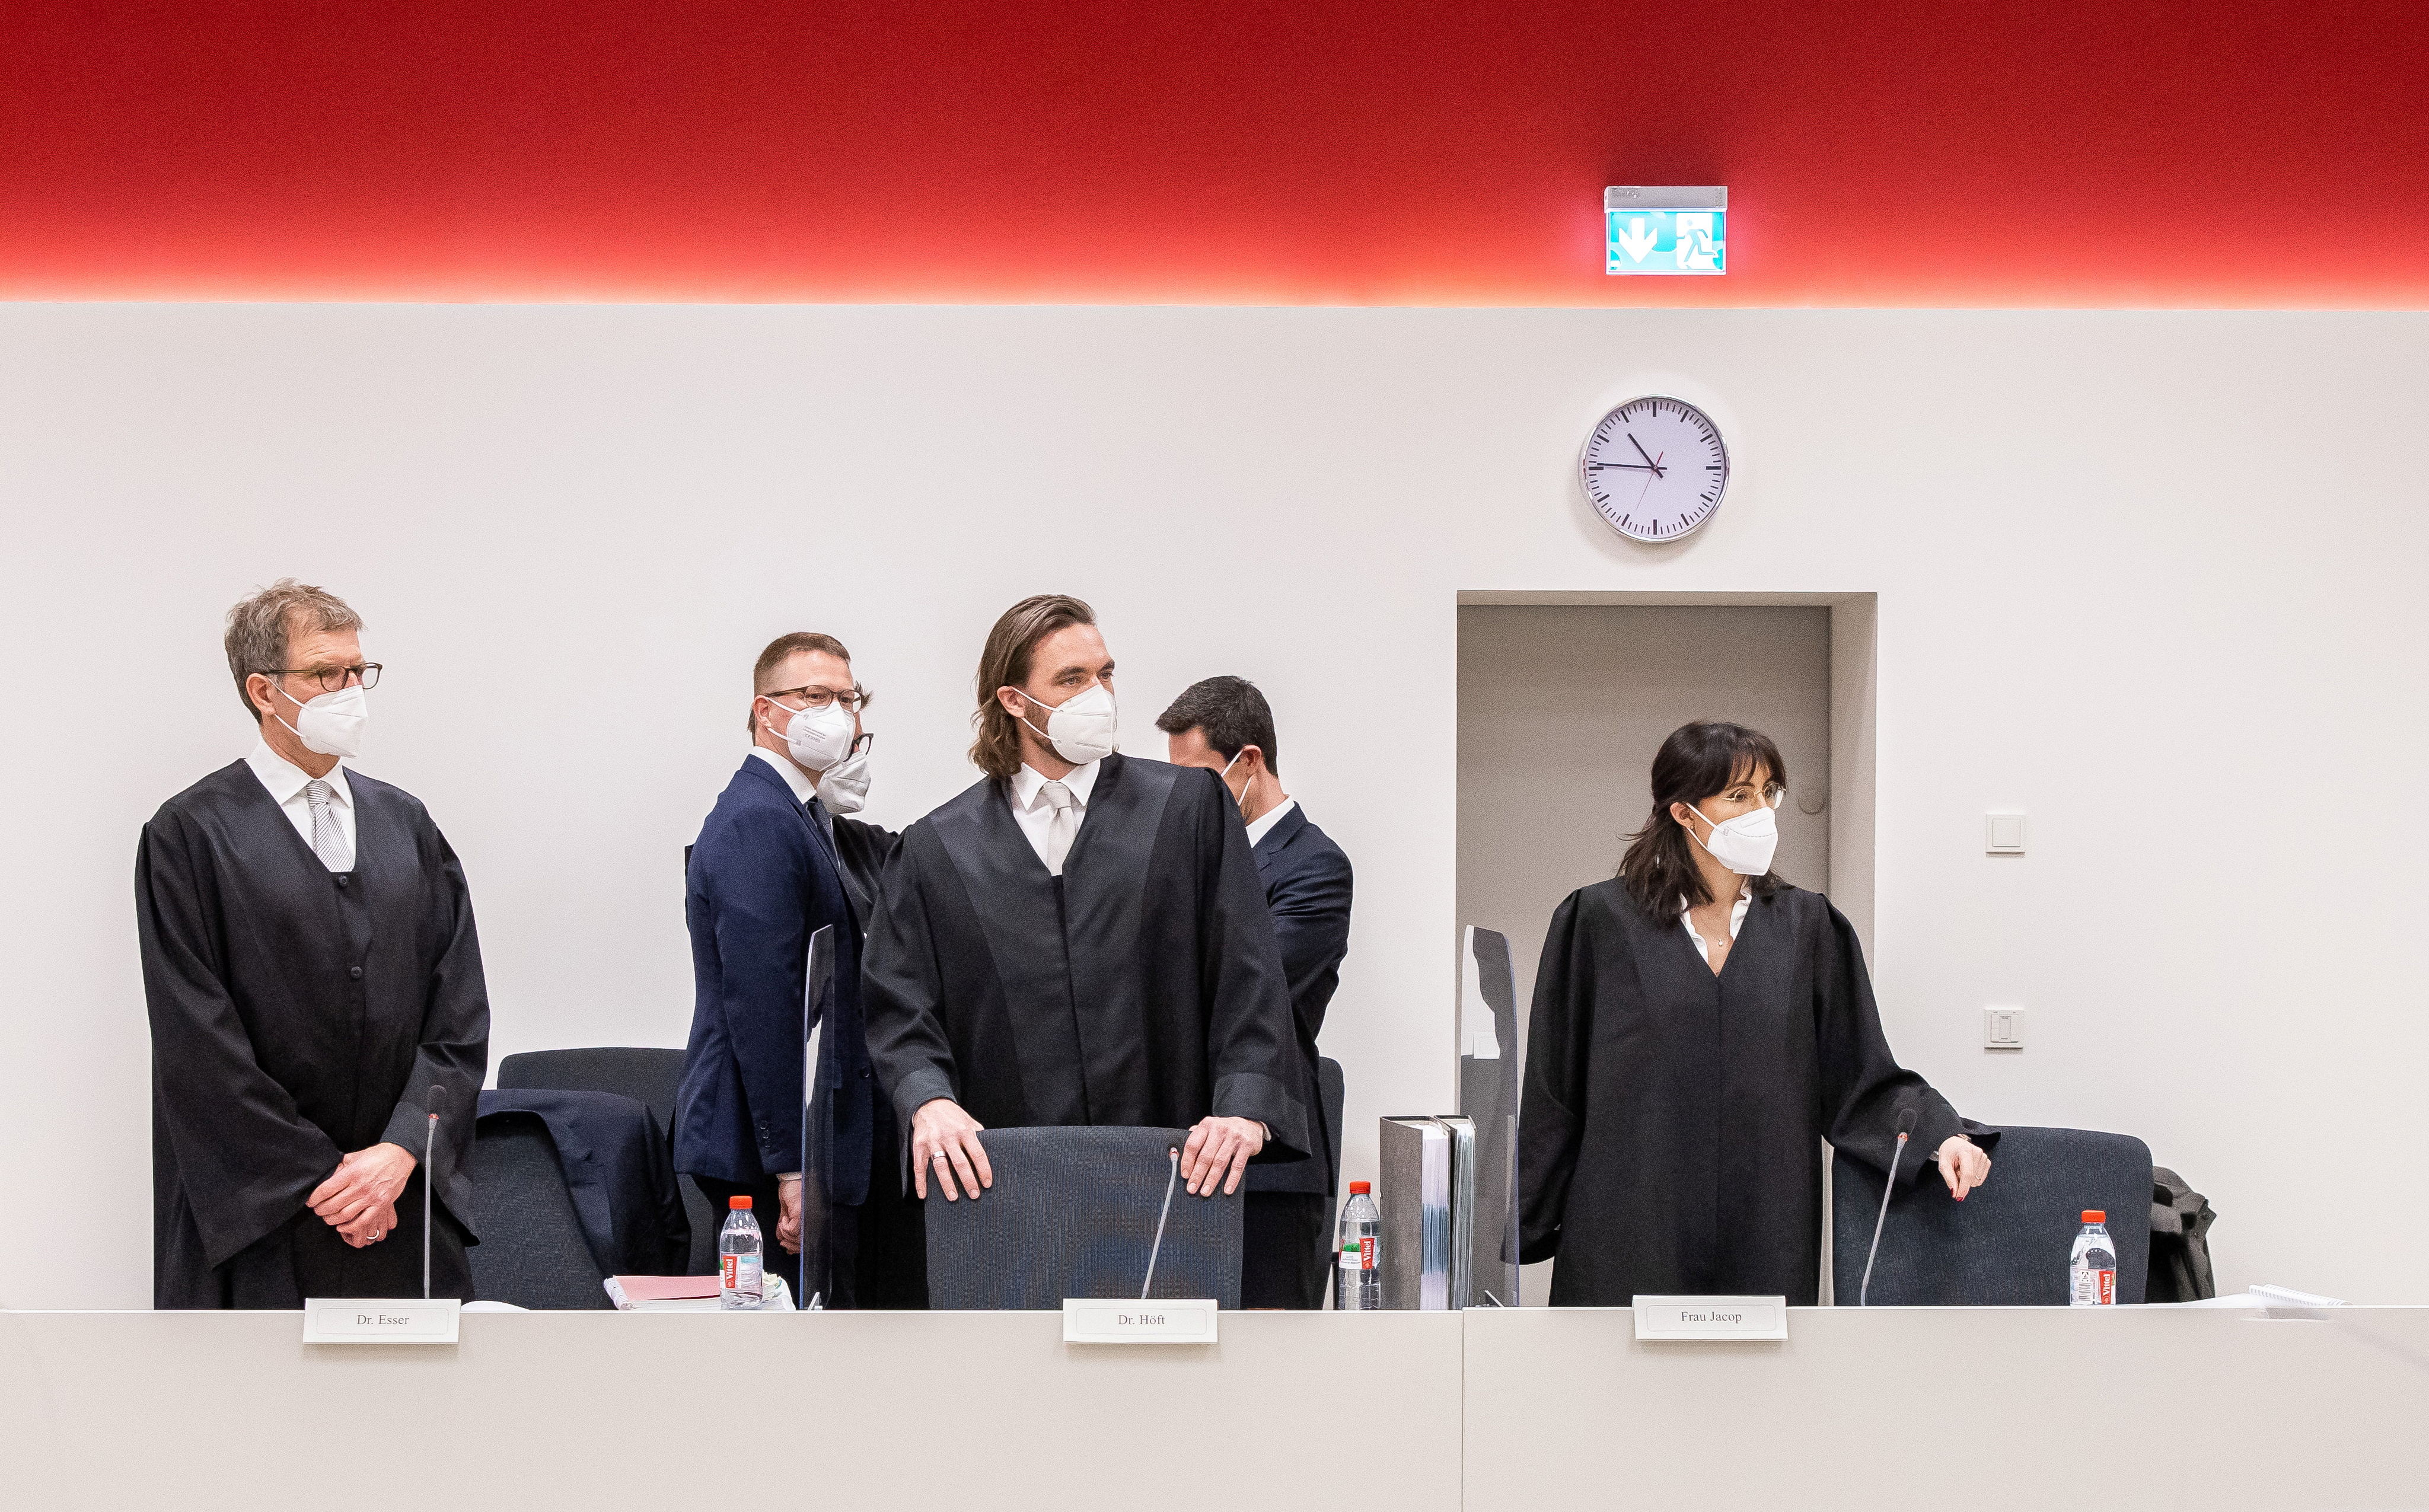 Facebook lawyers wait for the start of a hearing in Duesseldorf, Germany, March 24, 2021. The higher regional court in Duesseldorf hears Facebook's appeal against restrictions on its handling of user data ordered by Germany's Federal Cartel Office, in the latest installment of a two-year-old legal battle over the anti-trust regulator's ruling that the social network abused its market dominance.     Marcel Kusch/Pool via REUTERS